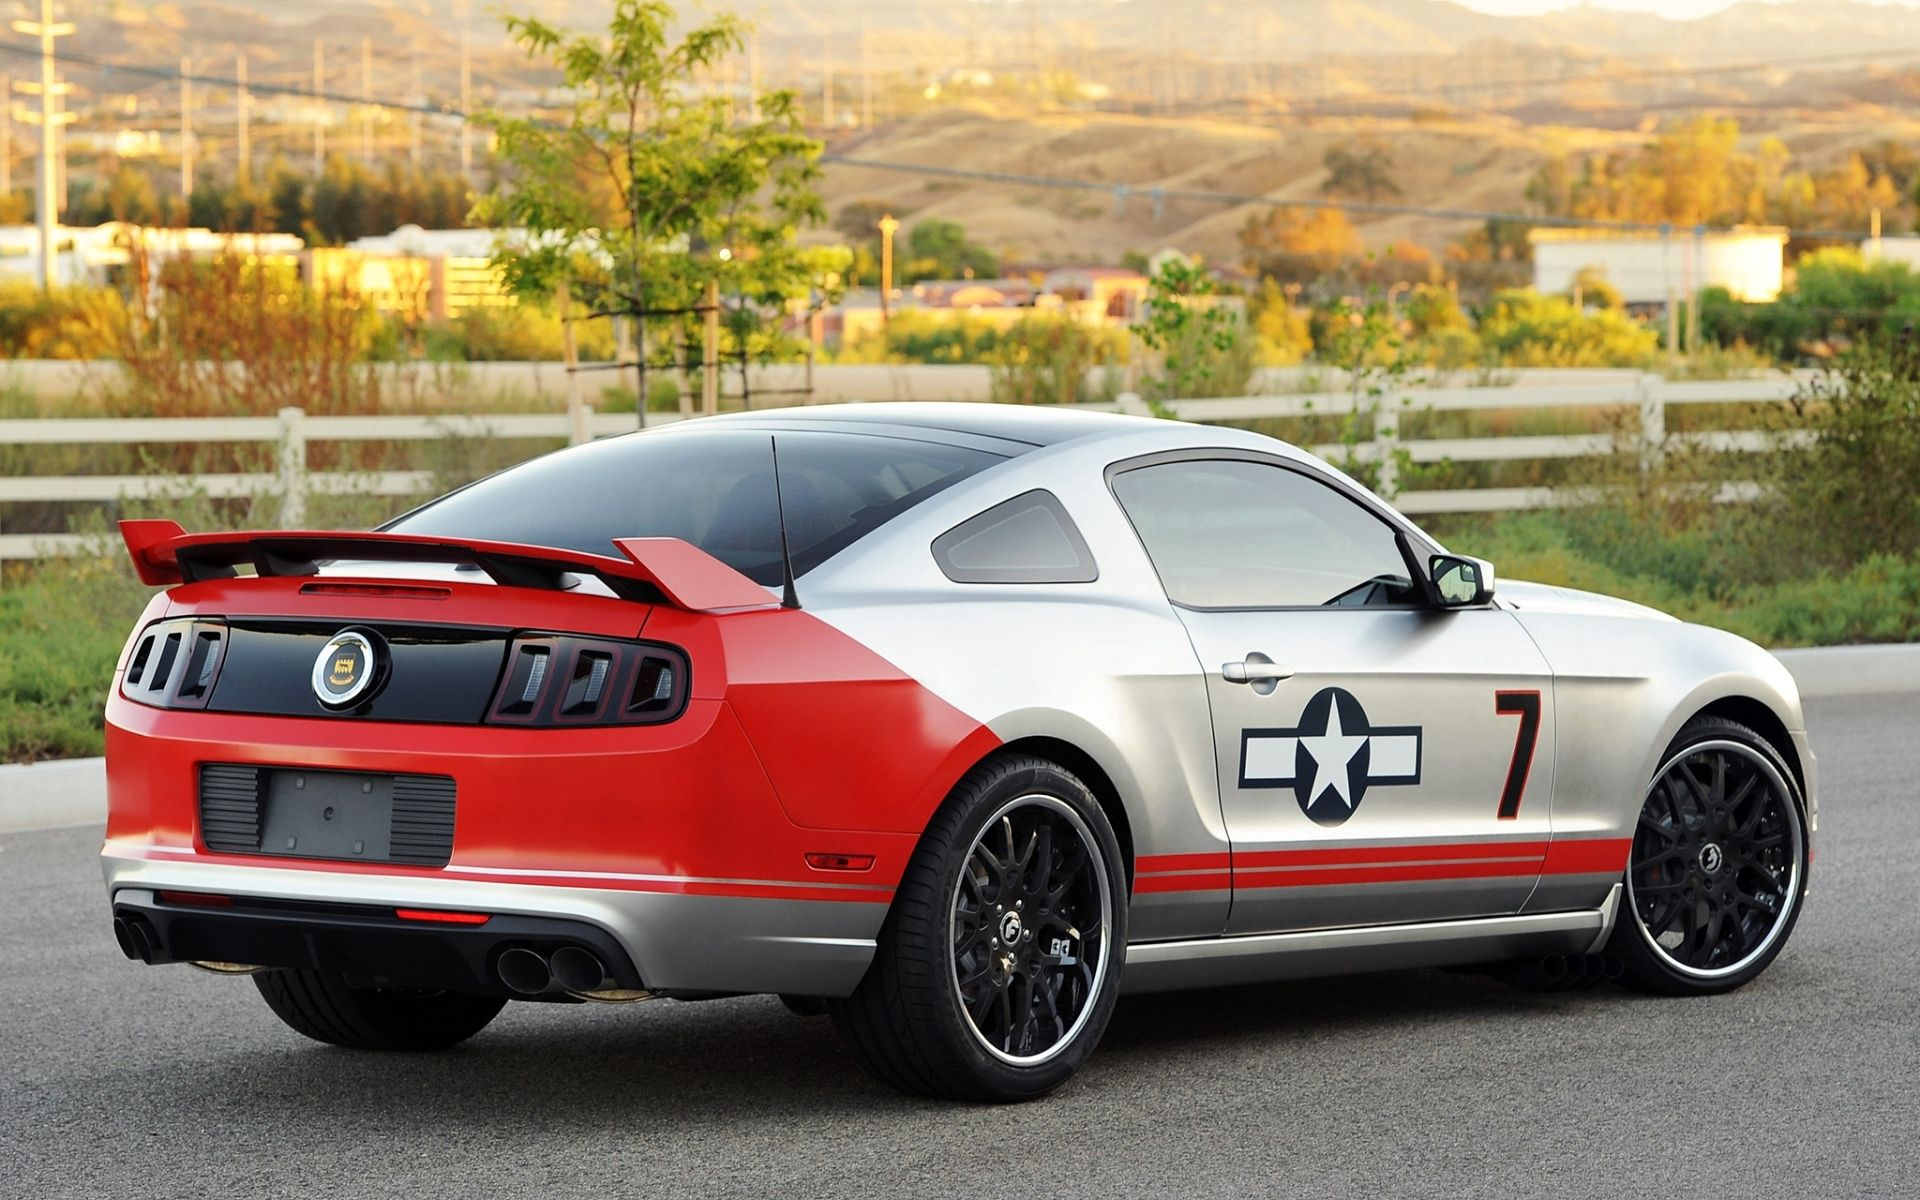 56492 download wallpaper Background, Tuning, Ford, Mustang, Cars, Grey, Back View, Rear View, Gt, Muscle Car, Coupe, Compartment, Red Tails screensavers and pictures for free